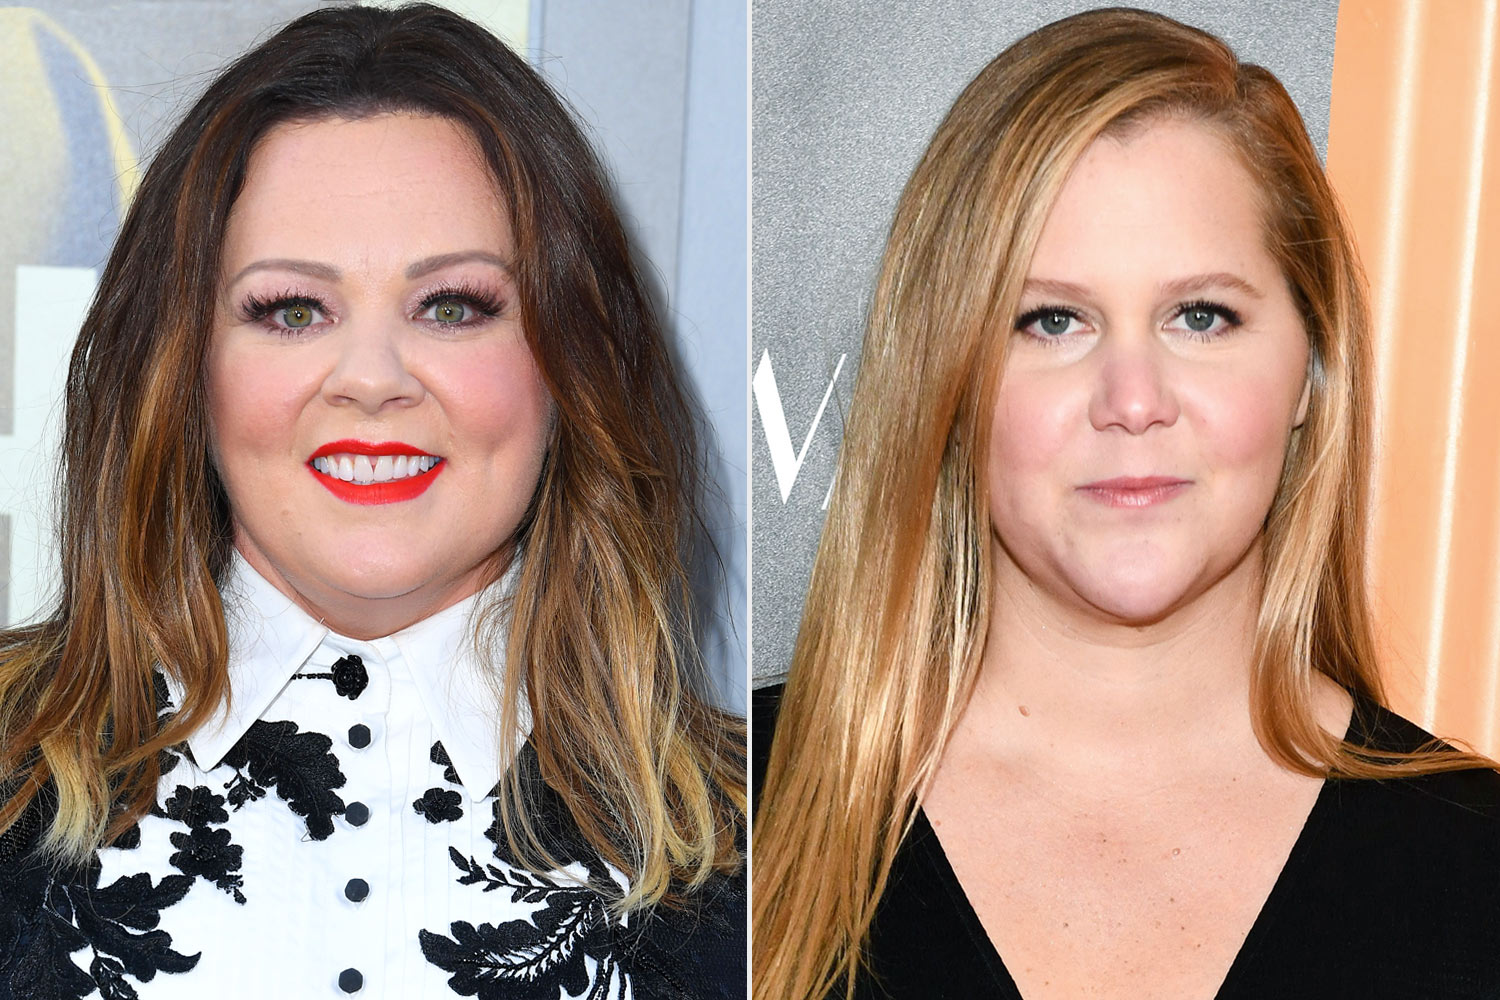 Melissa McCarthy and Amy Schumer